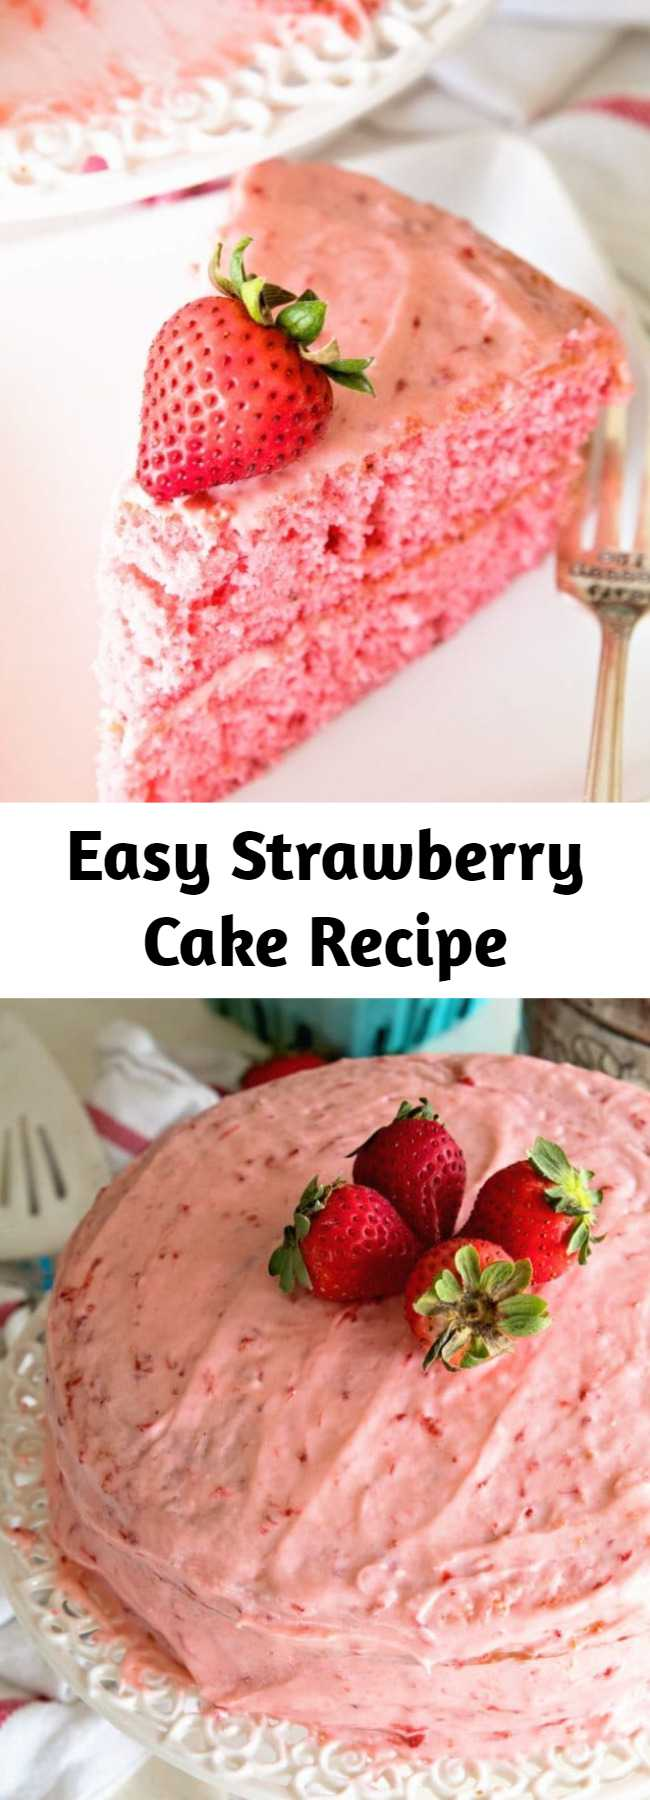 Easy Strawberry Cake Recipe - Starts with a Boxed Mix and is Dressed Up Fresh Strawberries and Iced with a Fresh Strawberry Frosting!